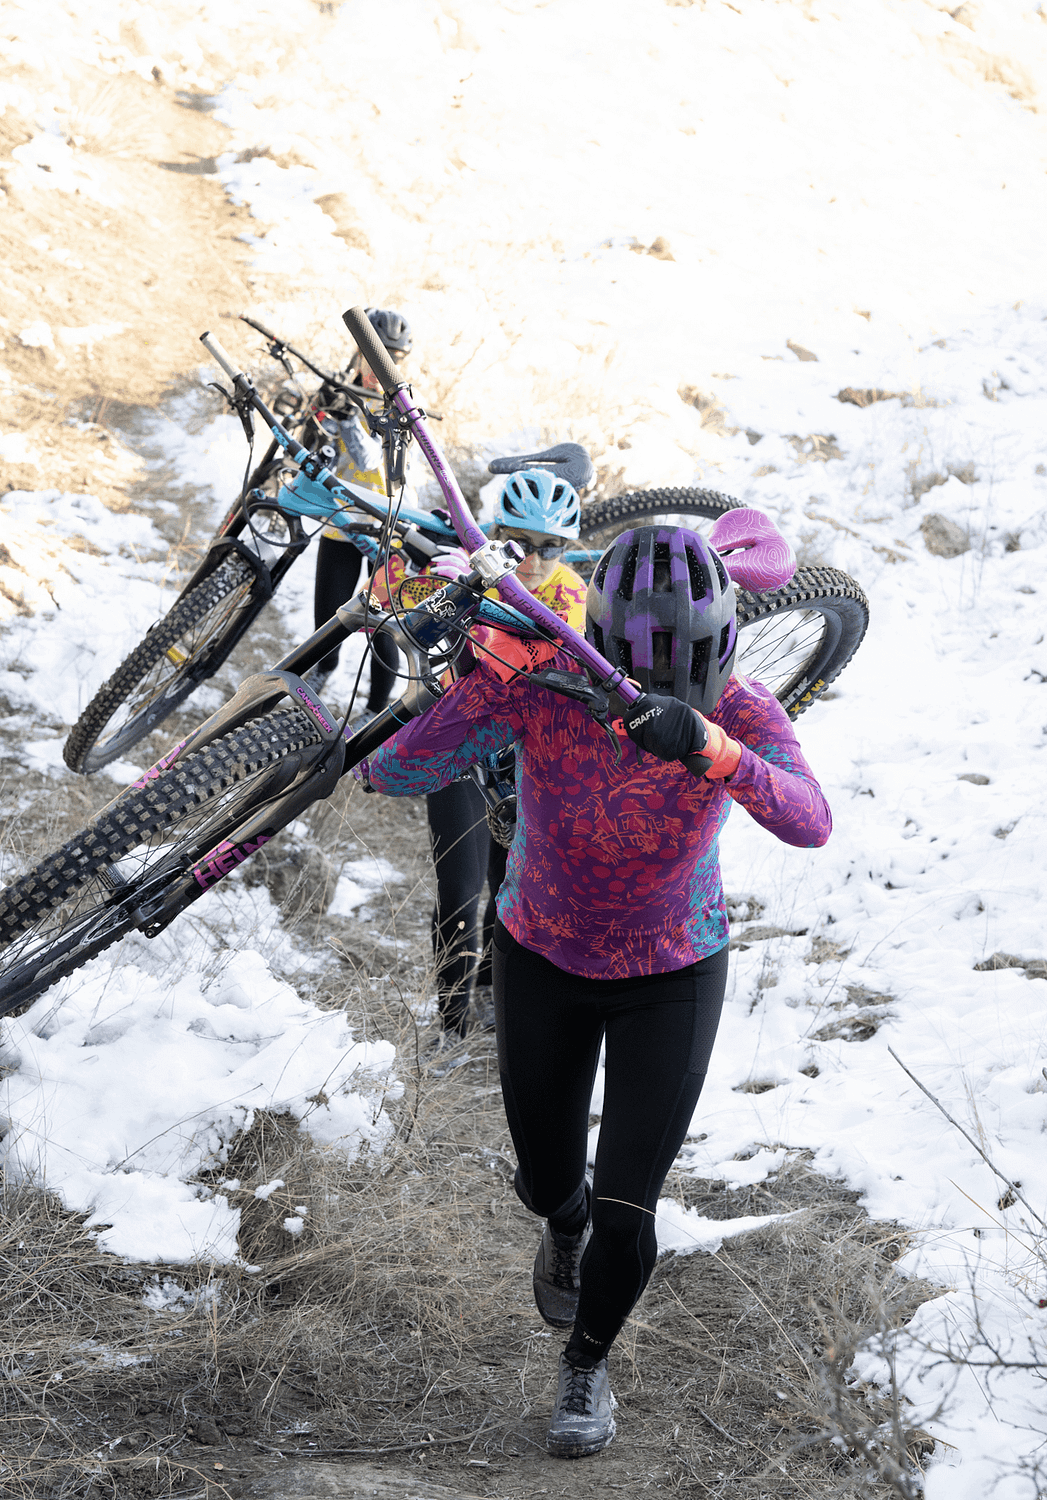 Women shouldering their mountain bikes to climb a hill, snow on ground, wearing Terry bike jerseys and cycling tights